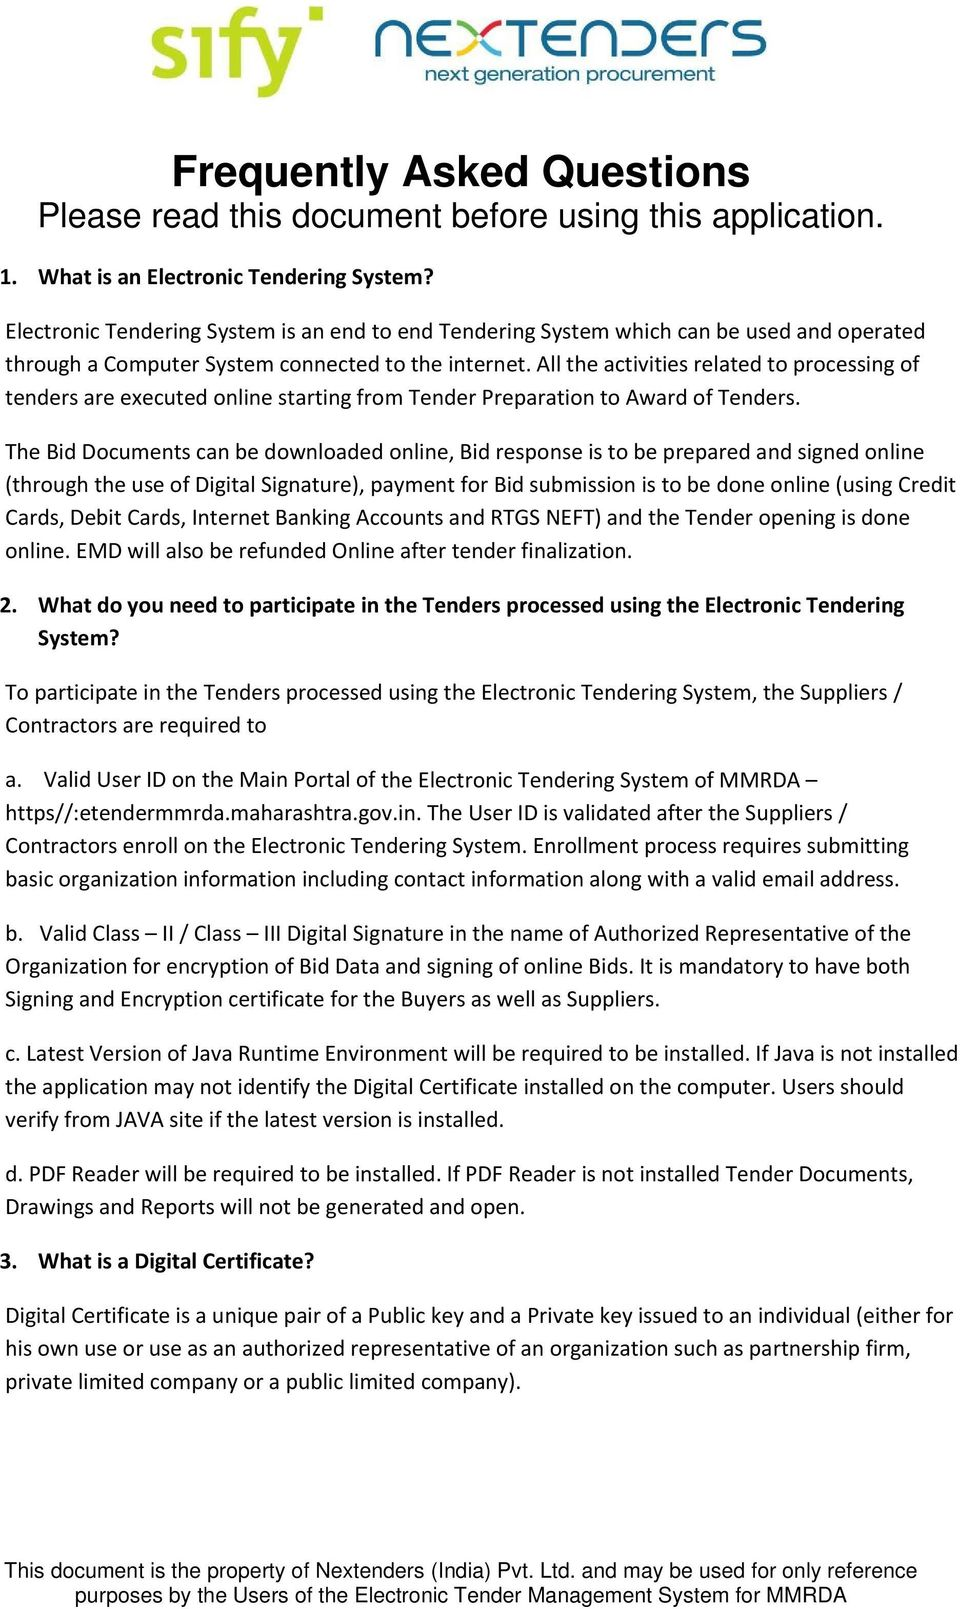 Frequently Asked Questions Please Read This Document Before Using